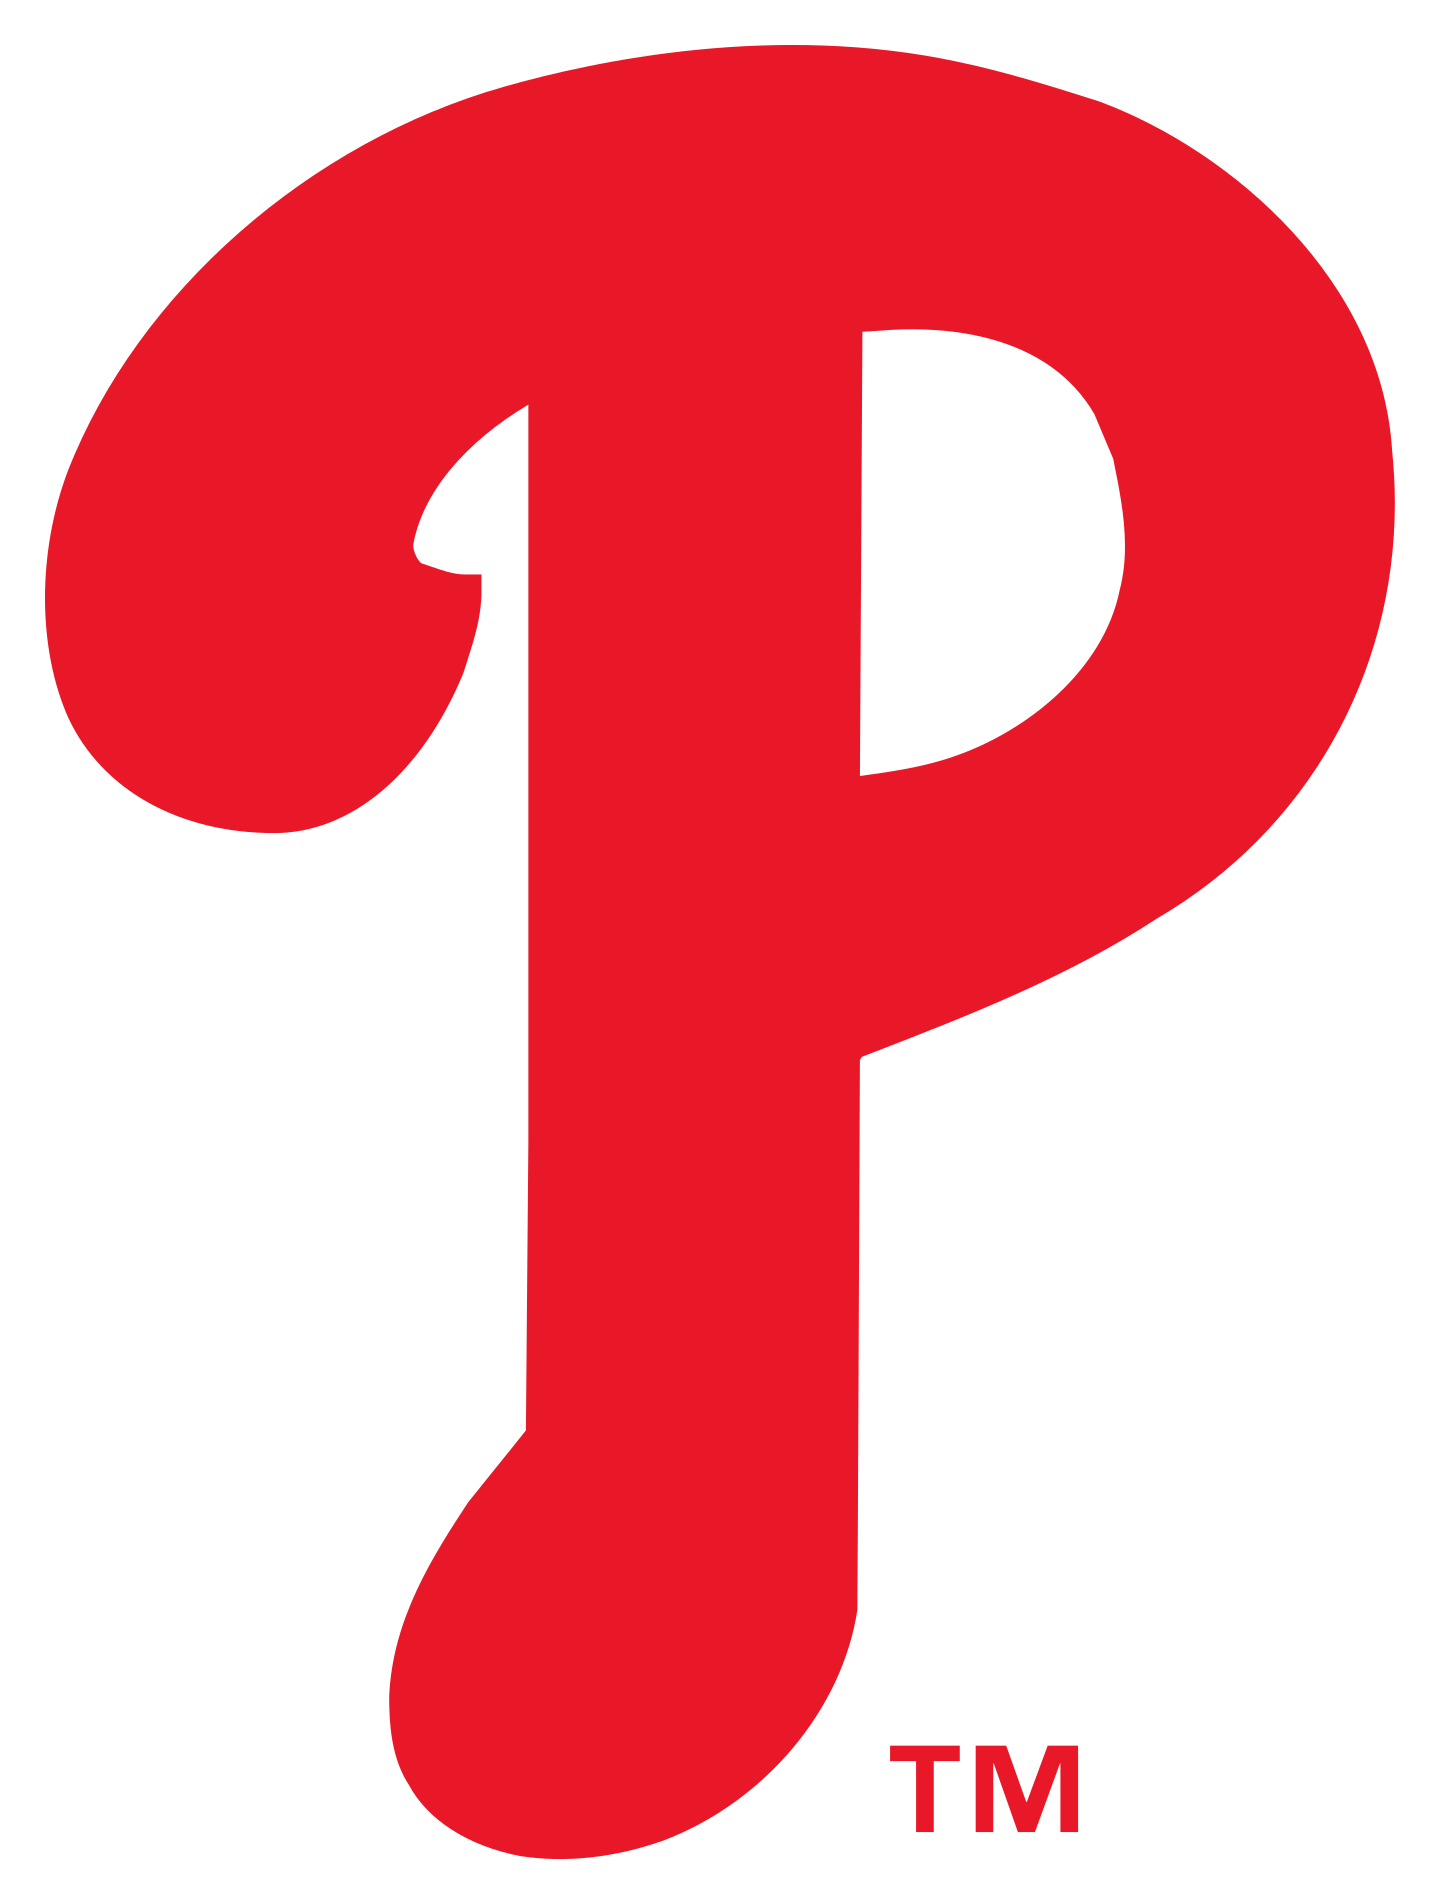 philadelphia phillies logo 2 - Philadelphia Phillies Logo